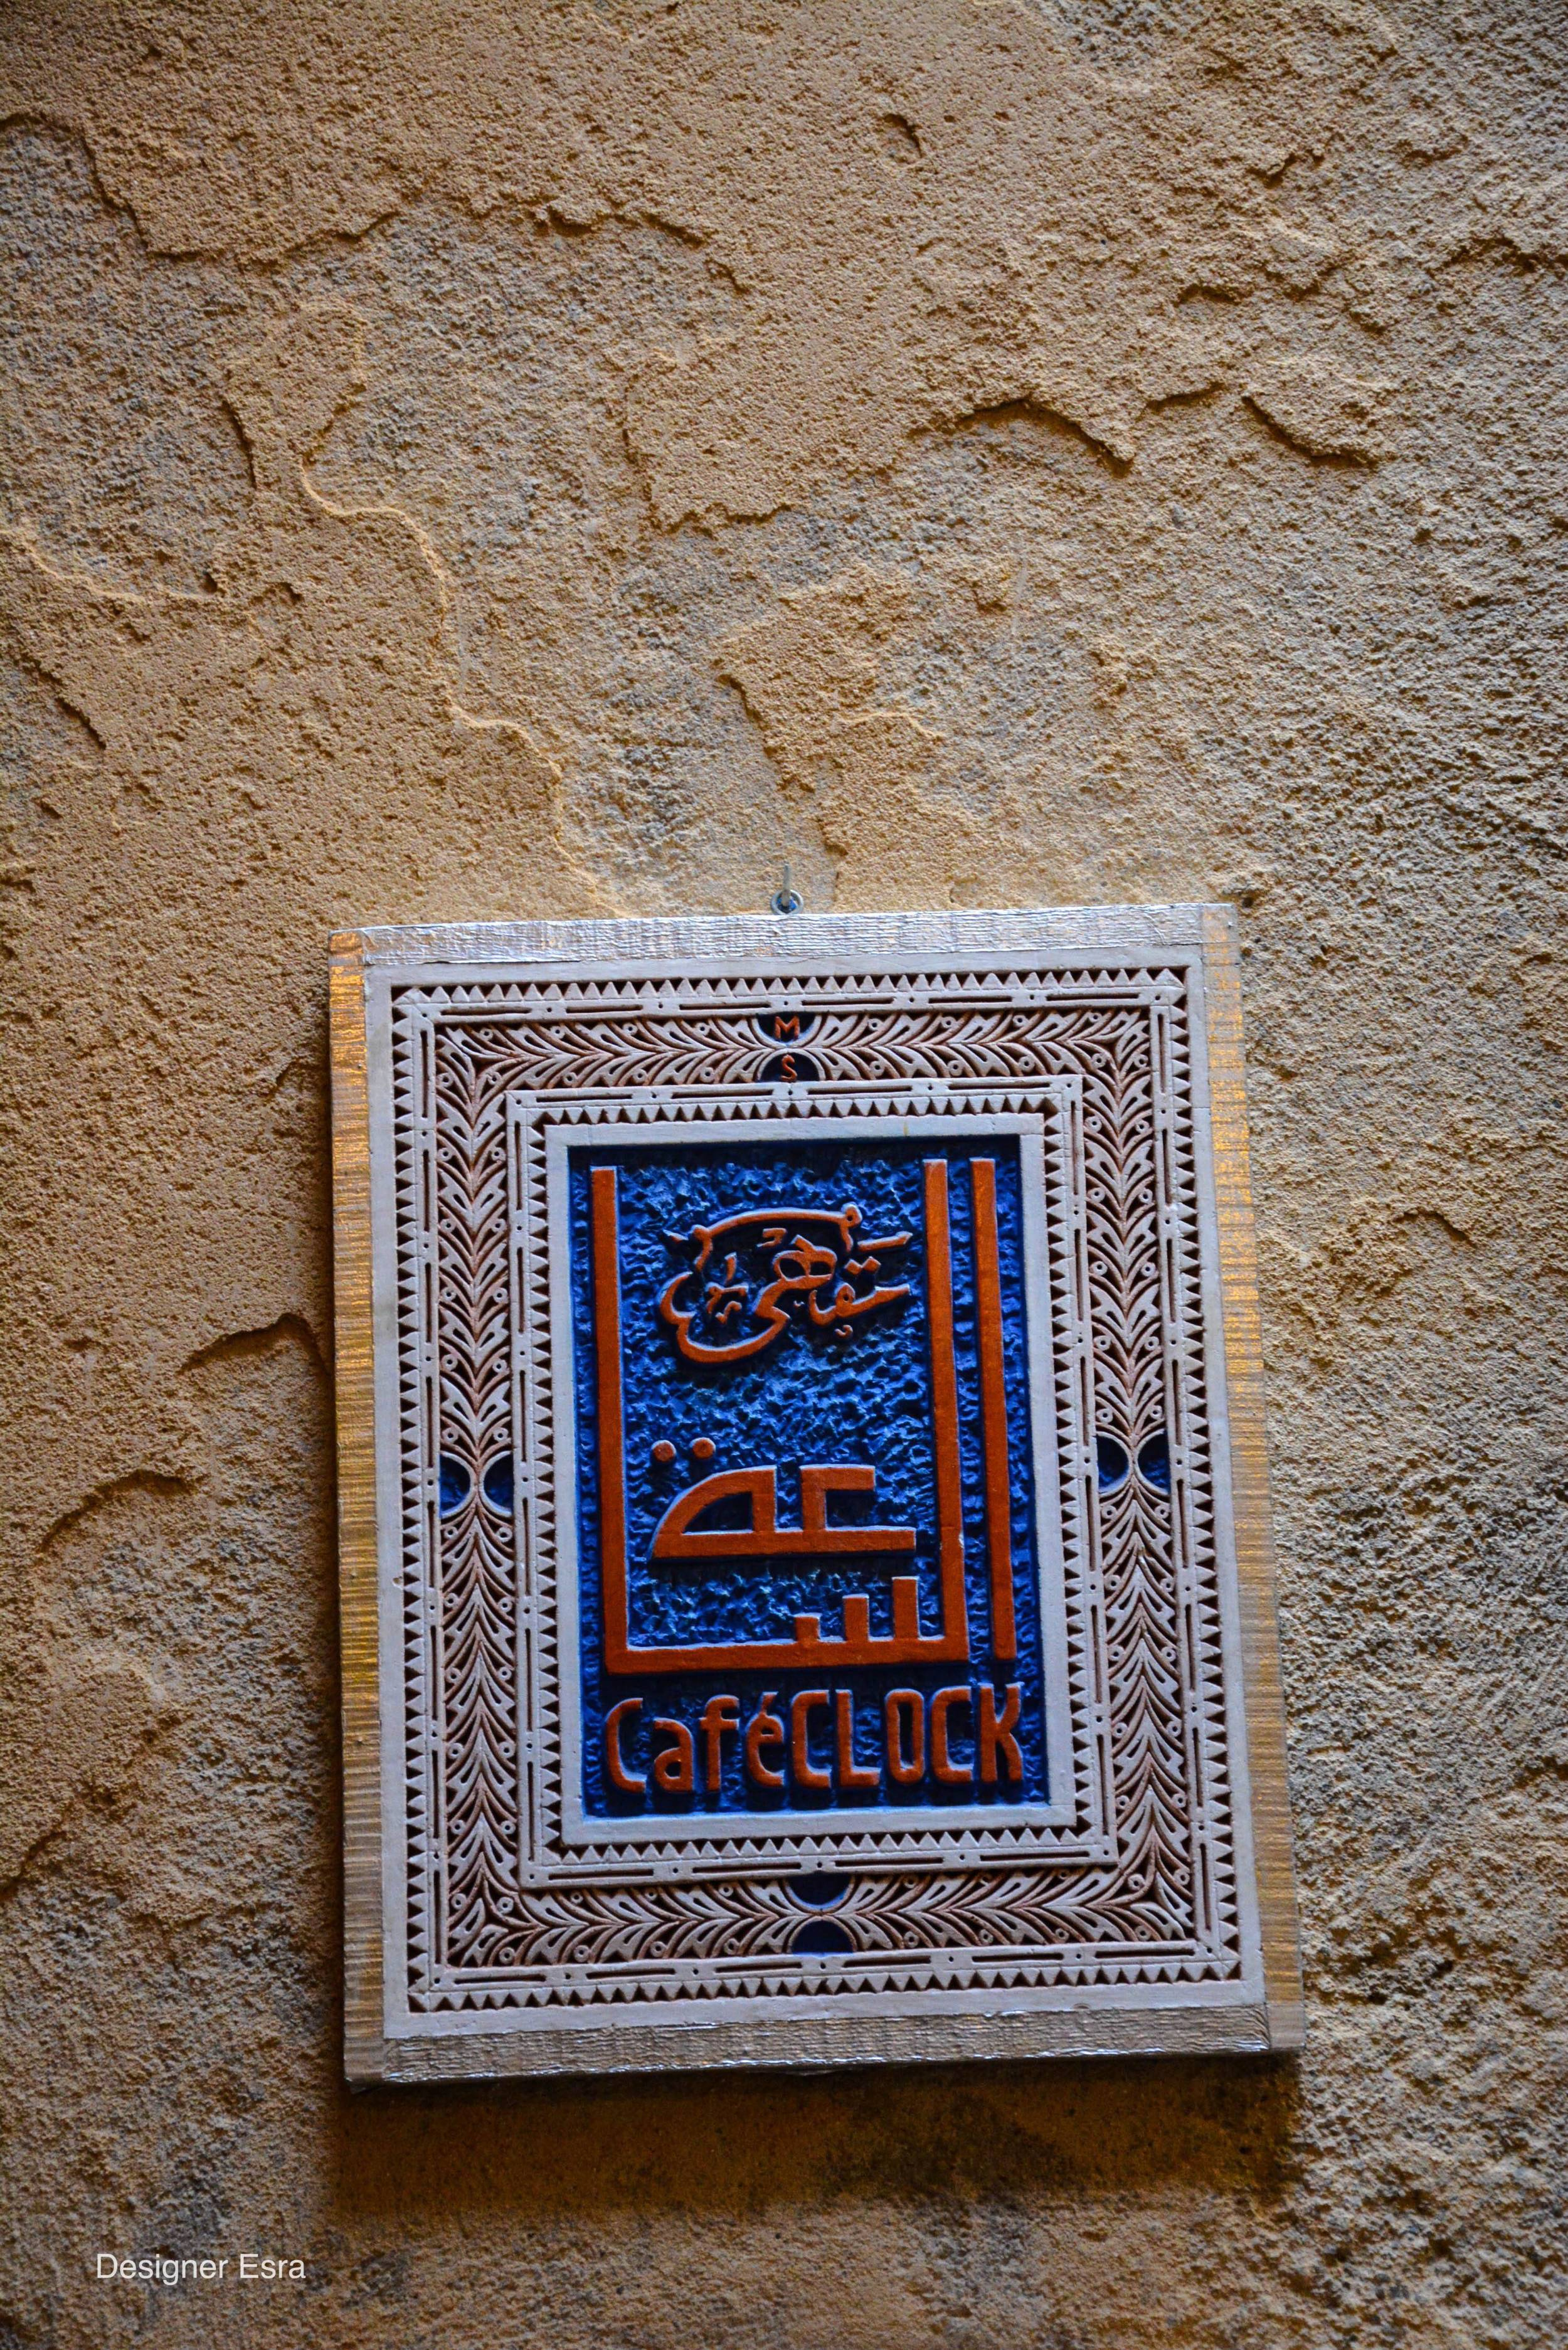 Cafe Clock in Fes, Morocco